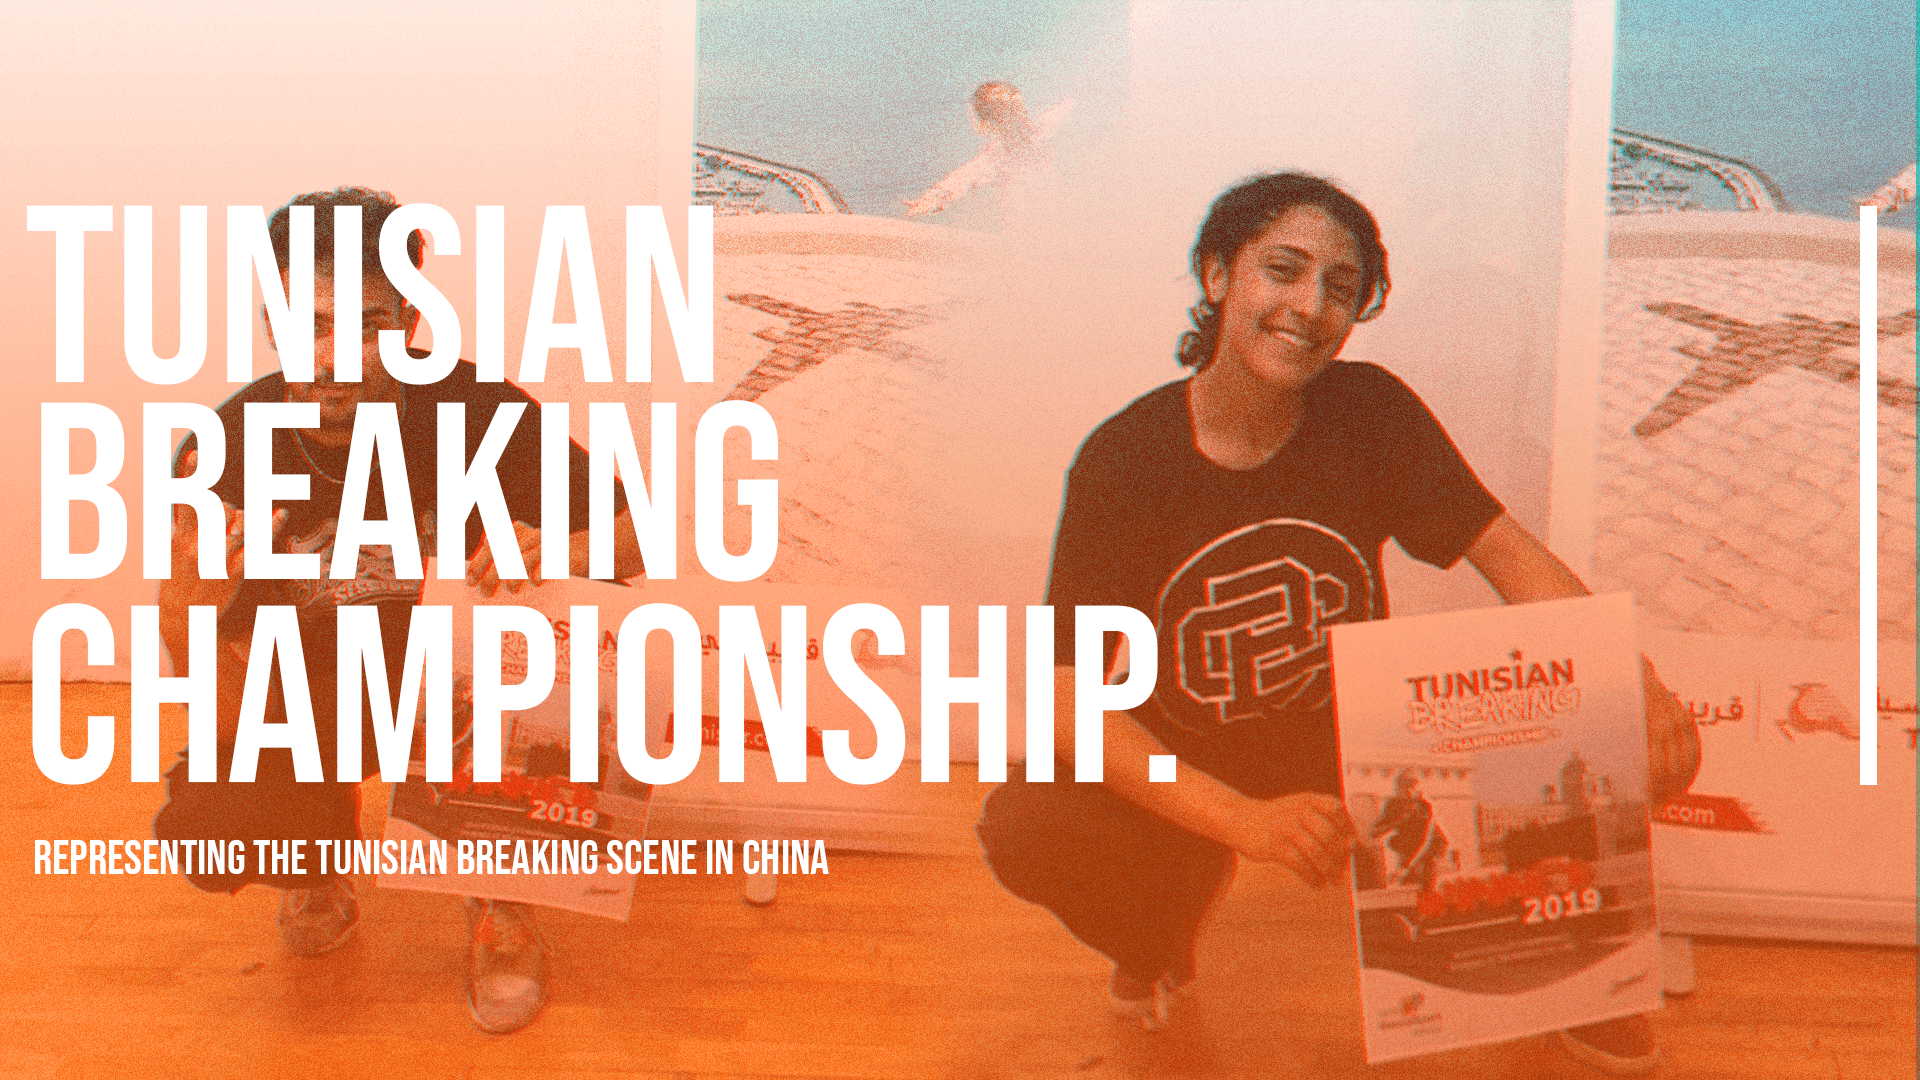 Tunisian Breaking Championship: Representing the Tunisian Breaking Scene in China